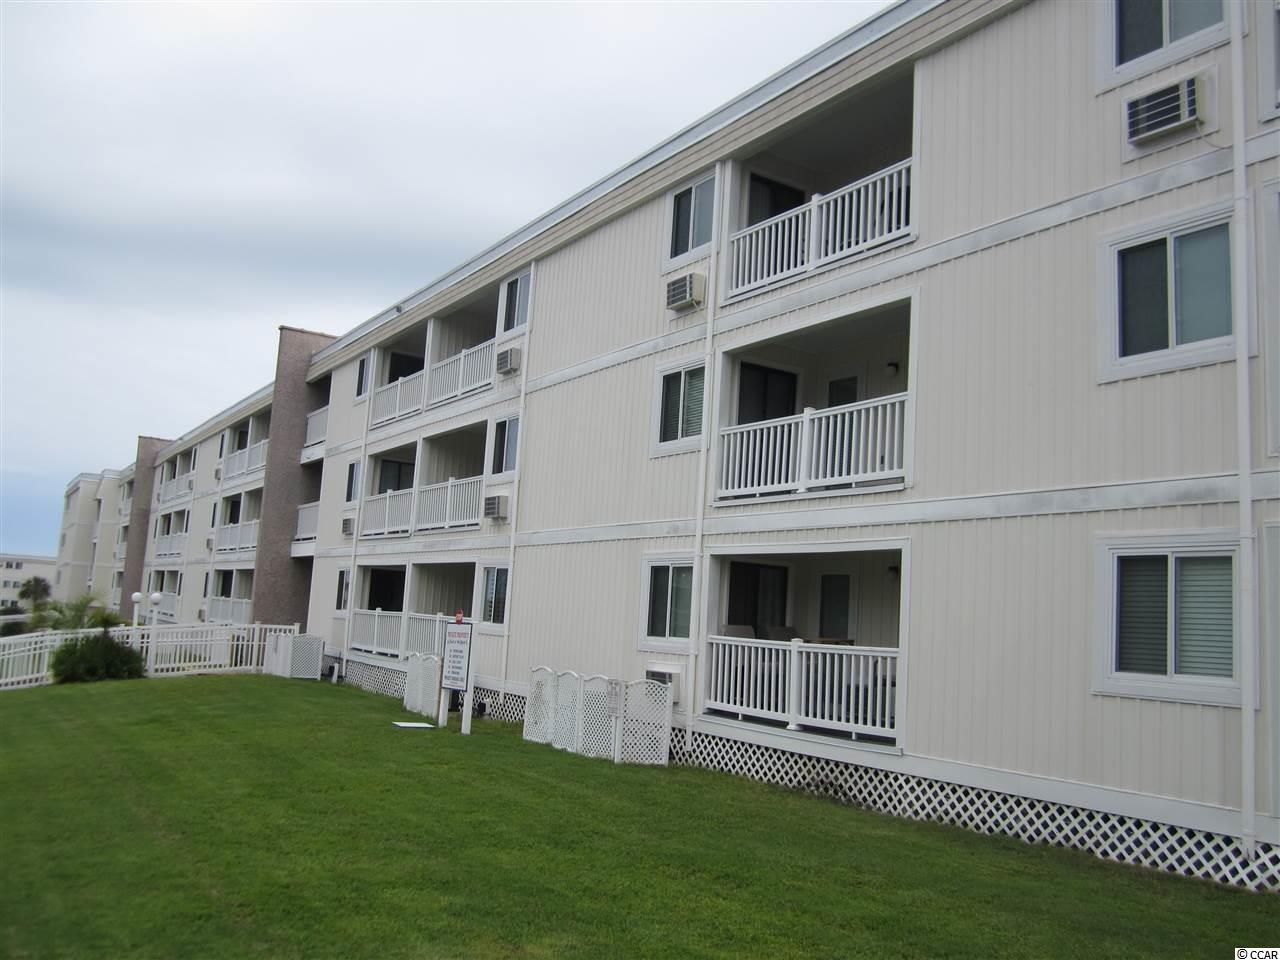 REDUCED AND READY TO SELL!  Own a well maintained and updated condo in the popular section of Shore Drive.  This condo is not on a rental program but has great rental potential or use it as a Beach getaway.  Living Room HVAC unit replaced May 2019, Bedroom HVAC replaced in 2014.  Water heater replaced 2017.  Updated all flooring in 2017, faucets,  TV's and lighting updated in 2017.  Furniture updated in 2016 and the interior was painted in 2017.   Step out on the balcony with an ocean view from the living room or master bedroom.  measurements approximate, Buyer to verify.